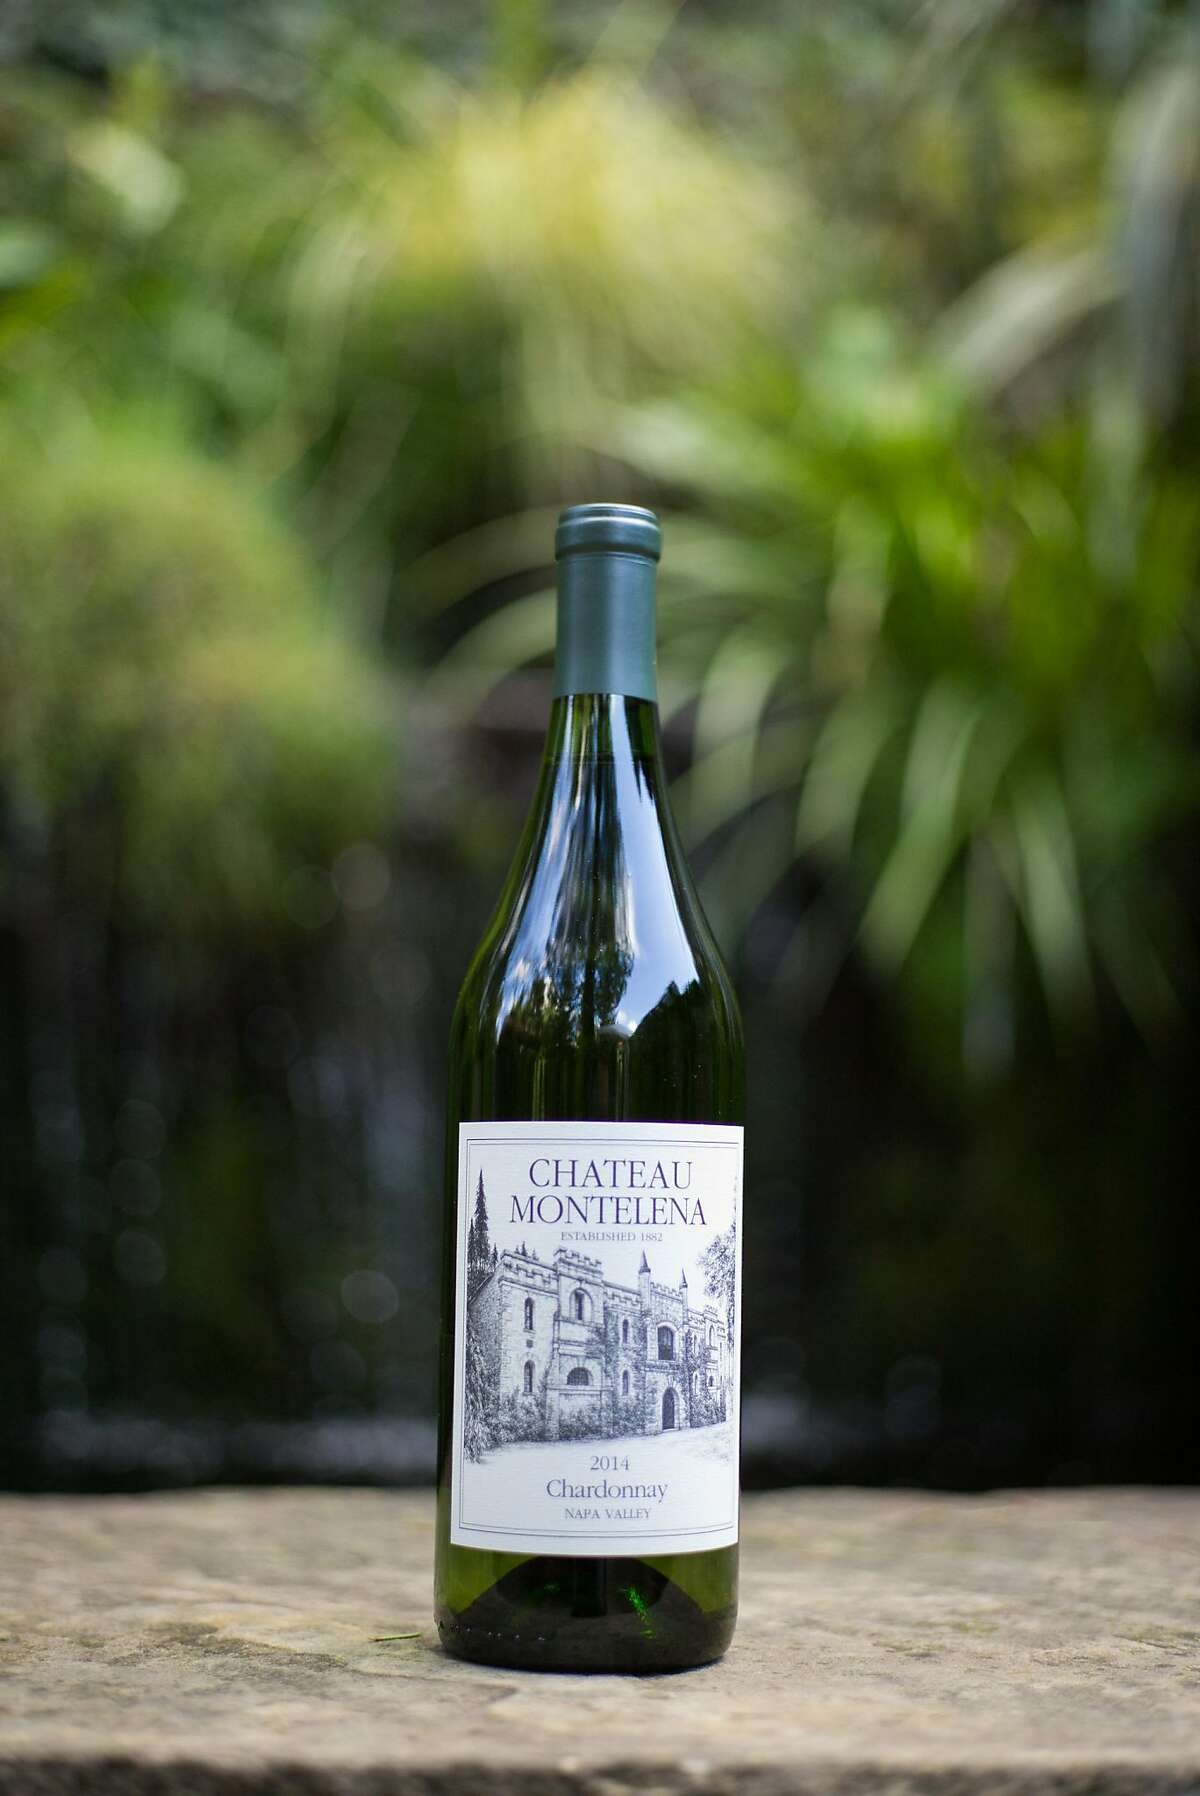 The Chardonnay is seen at Chateau Montelena in Oakville, Calif. on Thursday, Feb. 16, 2017. The winery also features a small pond on the property.